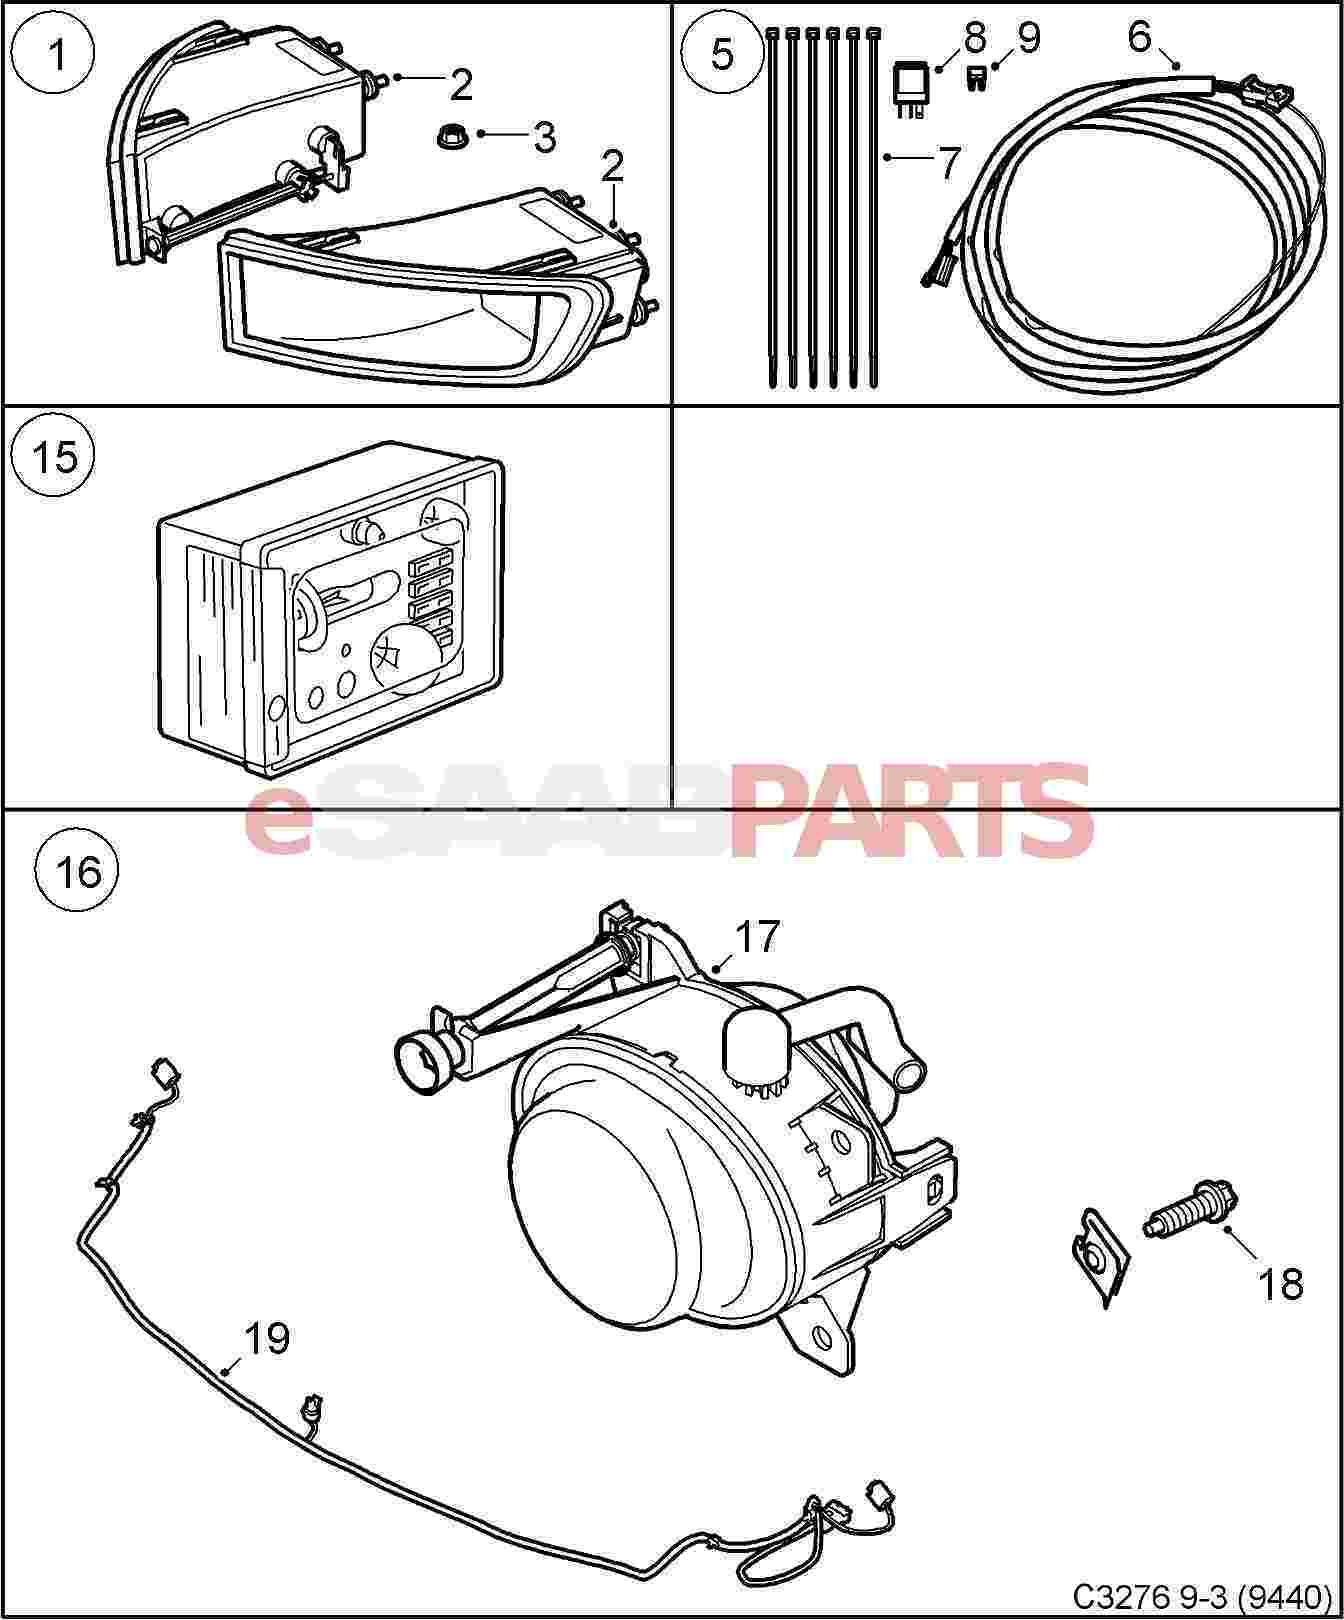 Saab 9 3 9440 Accessories Fluids Parts Wiring Diagram For Light Kit Lighting Fog Lights